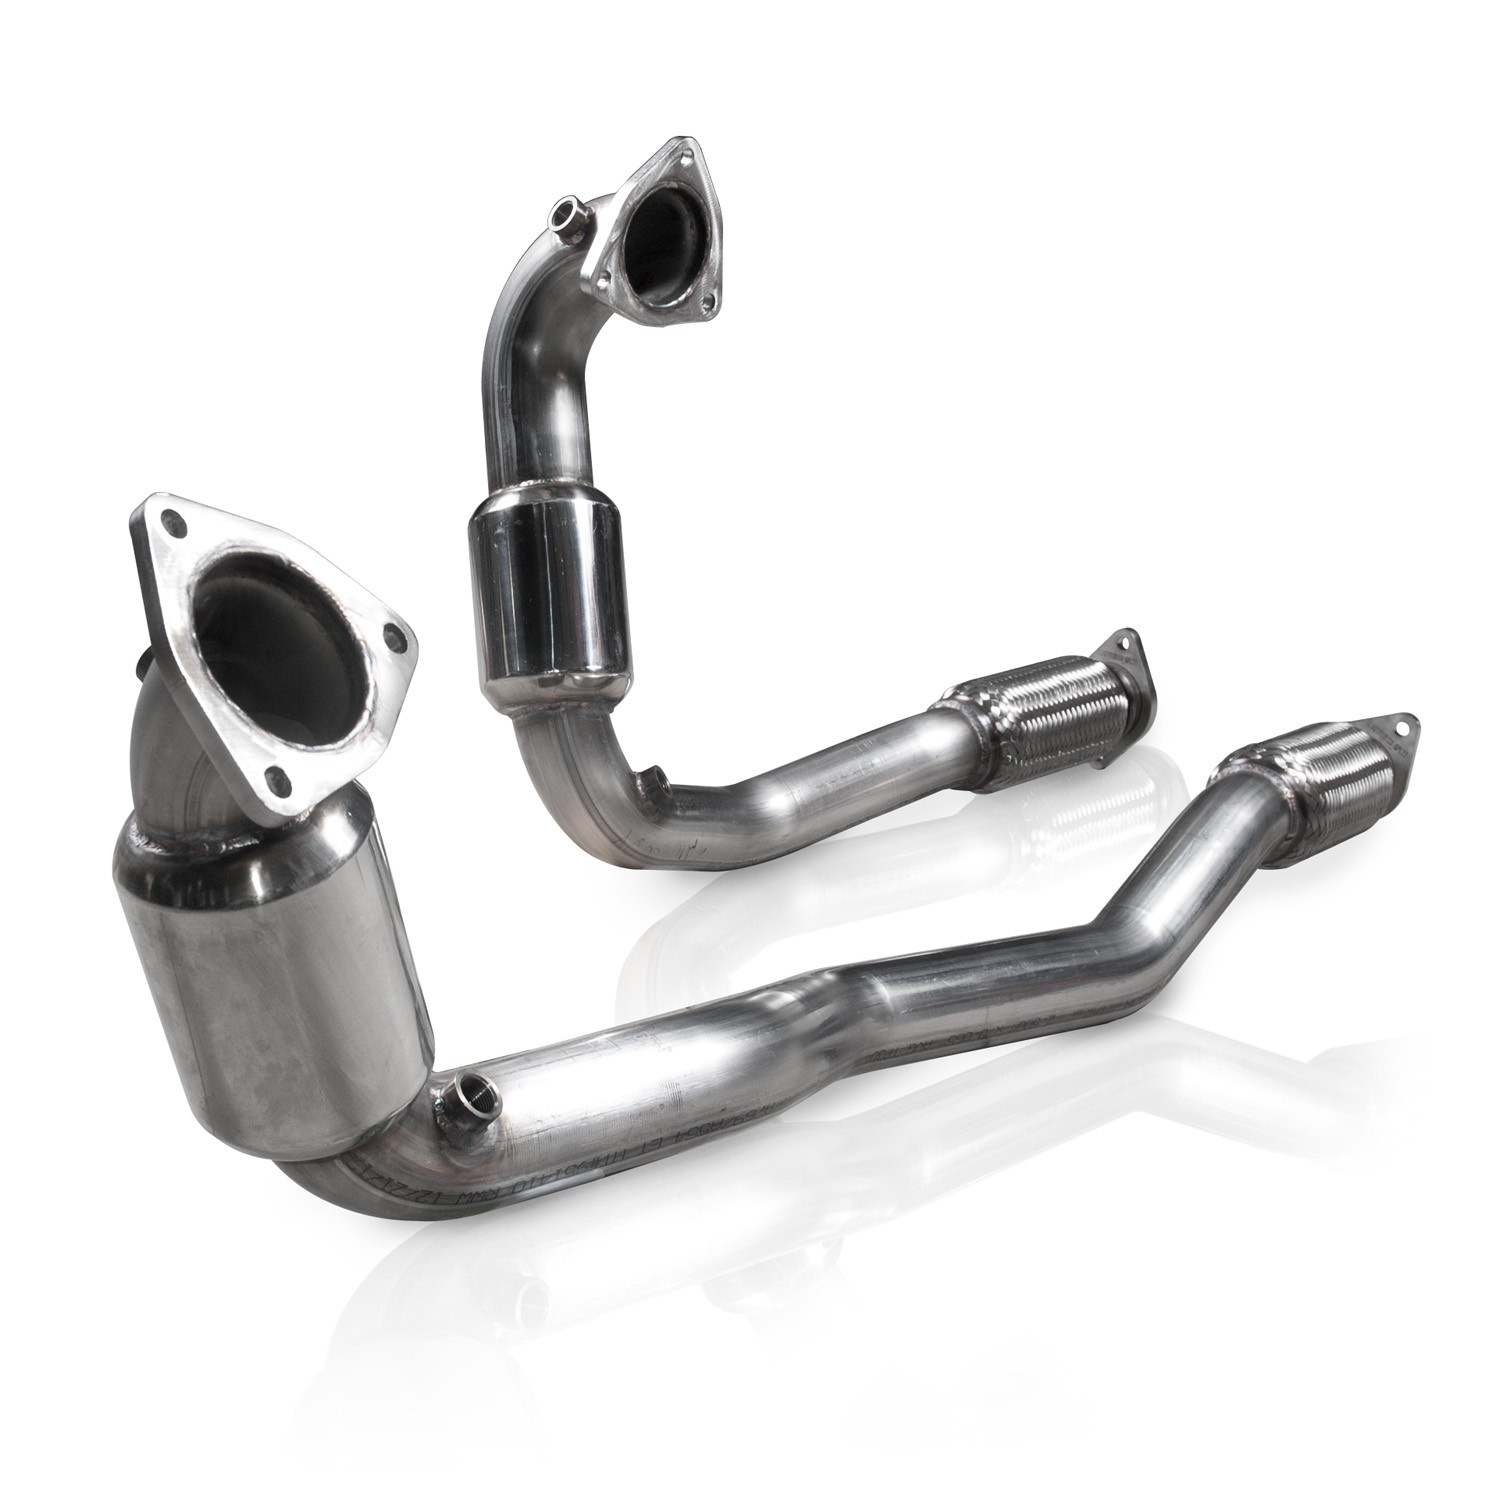 Stainless Works 2010-18 Ford Taurus SHO V6 Downpipe High-Flow Cats